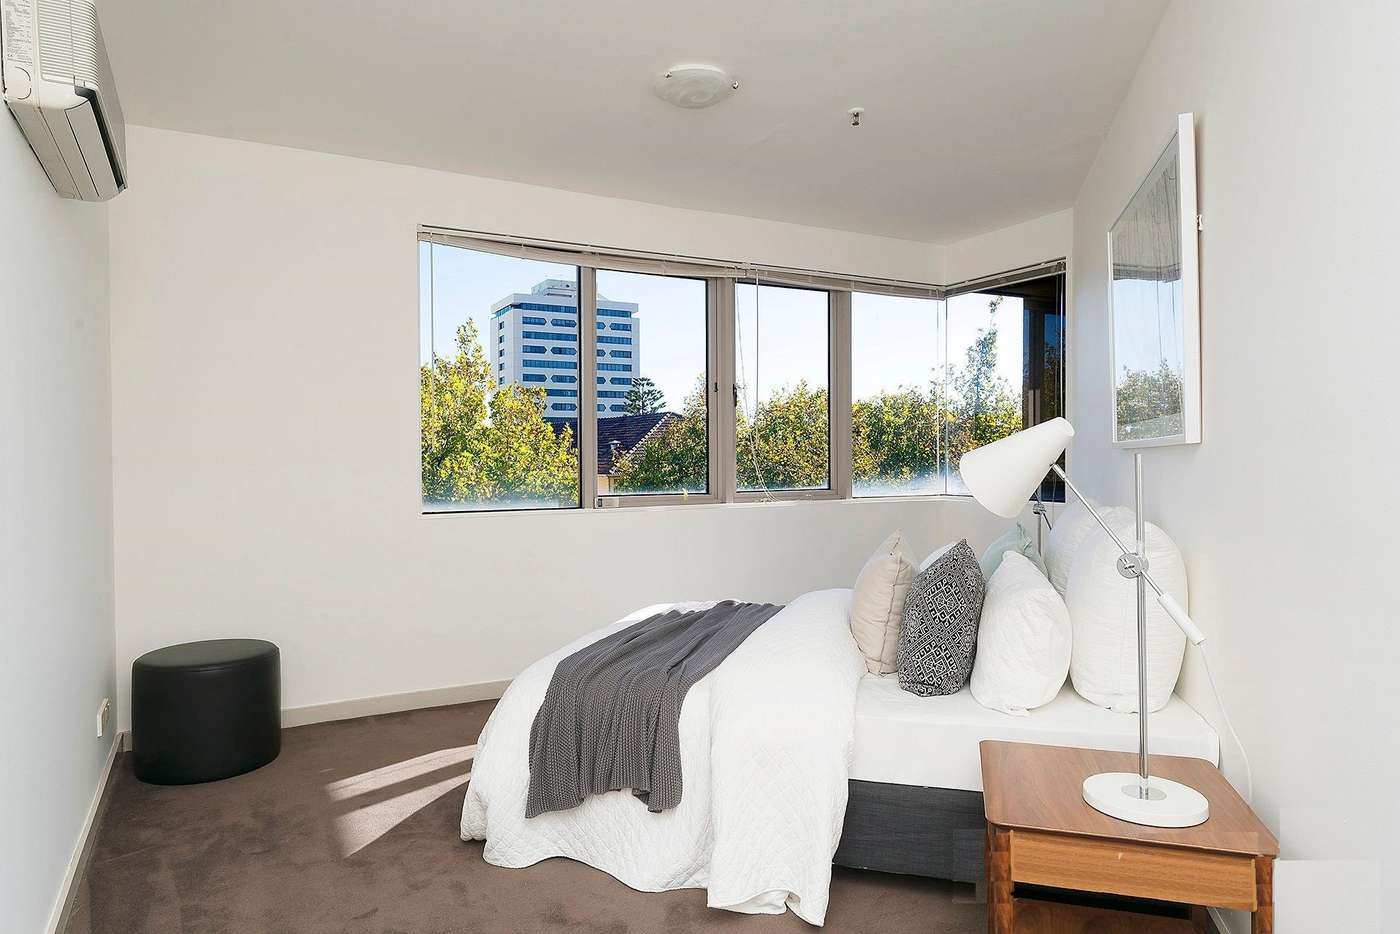 Seventh view of Homely apartment listing, 22/12 Acland Street, St Kilda VIC 3182